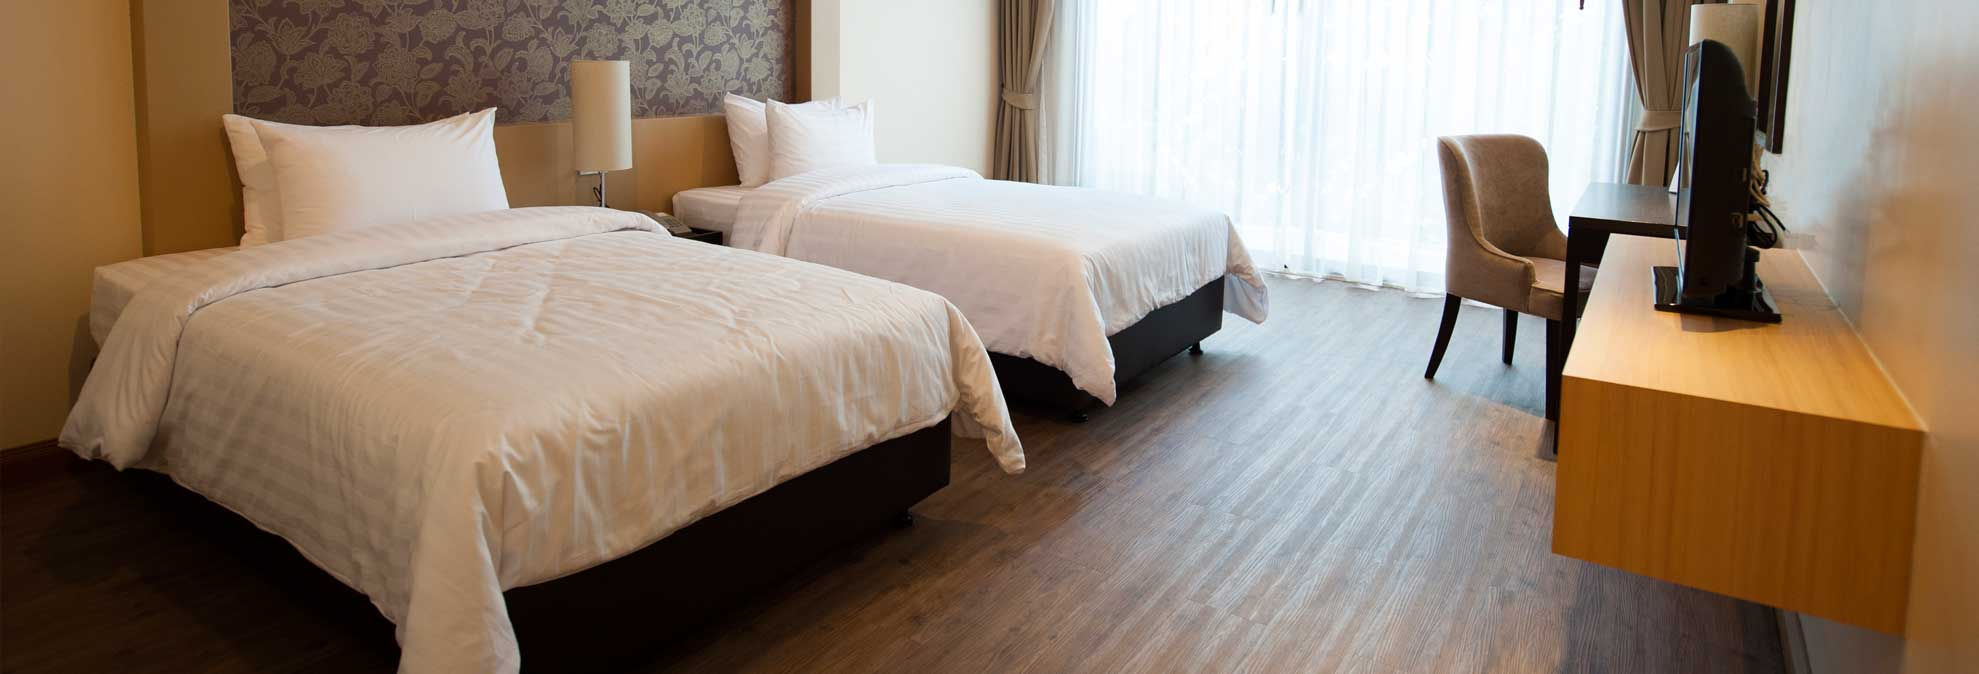 Best Hotel Room Buying Guide Consumer Reports